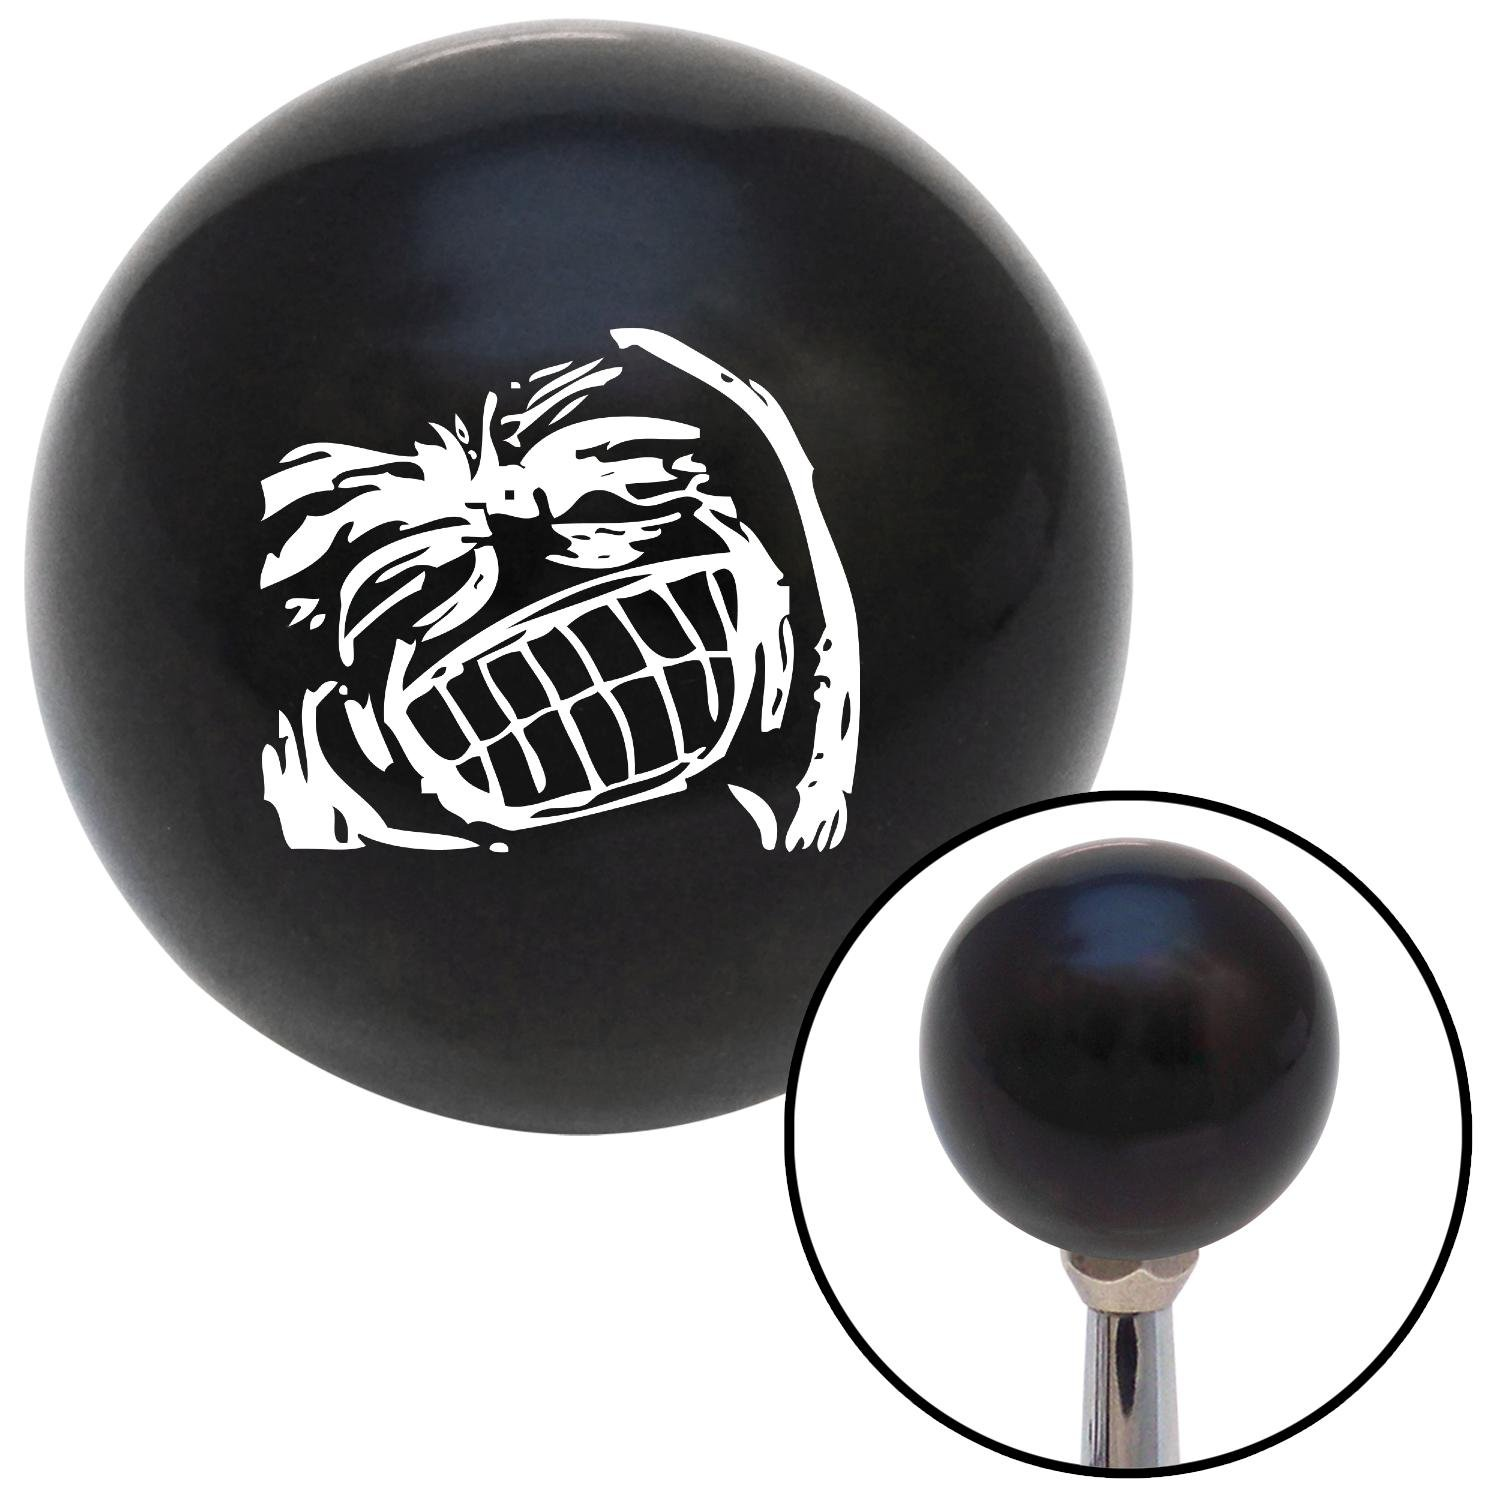 White Big Grin Meme American Shifter 105870 Black Shift Knob with M16 x 1.5 Insert